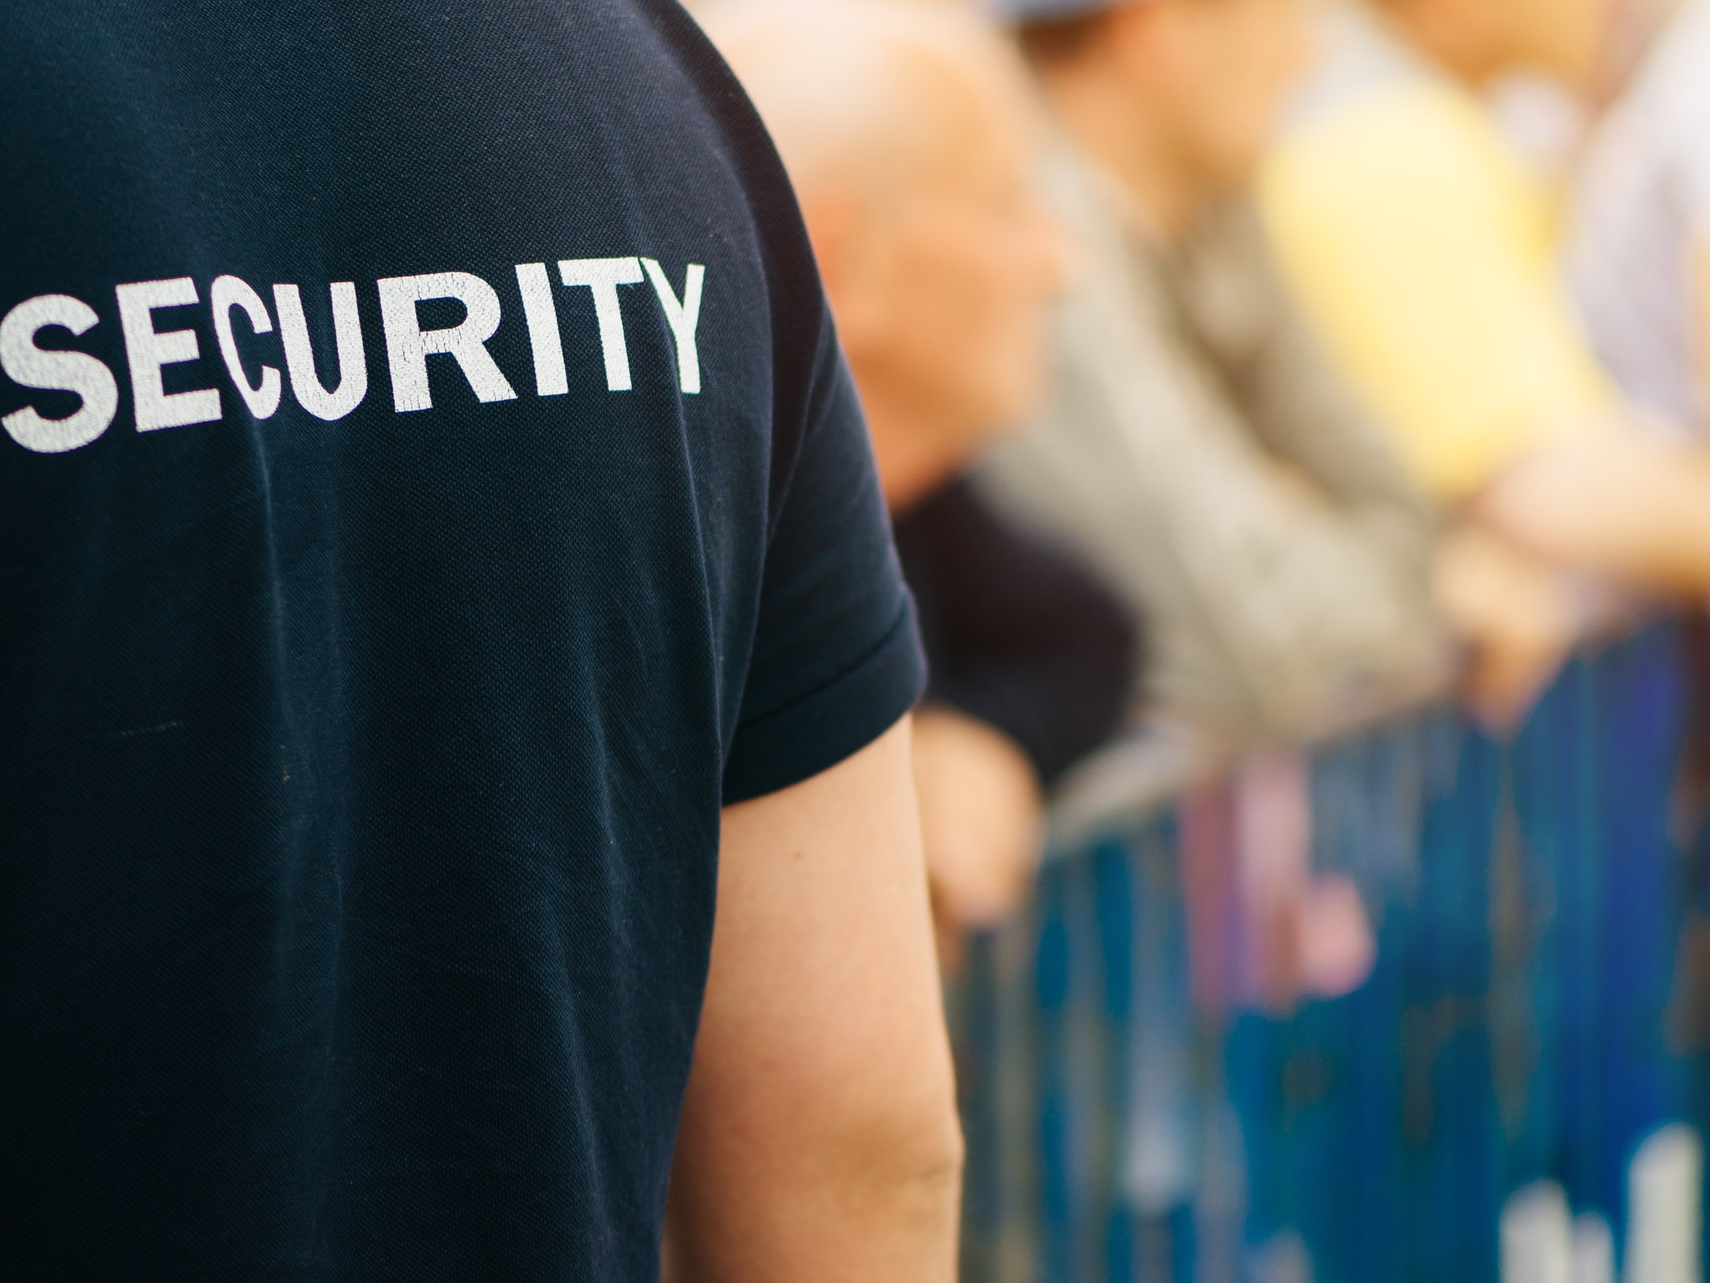 SECURITY SERVICES - How we keep companies feeling safe and secure.